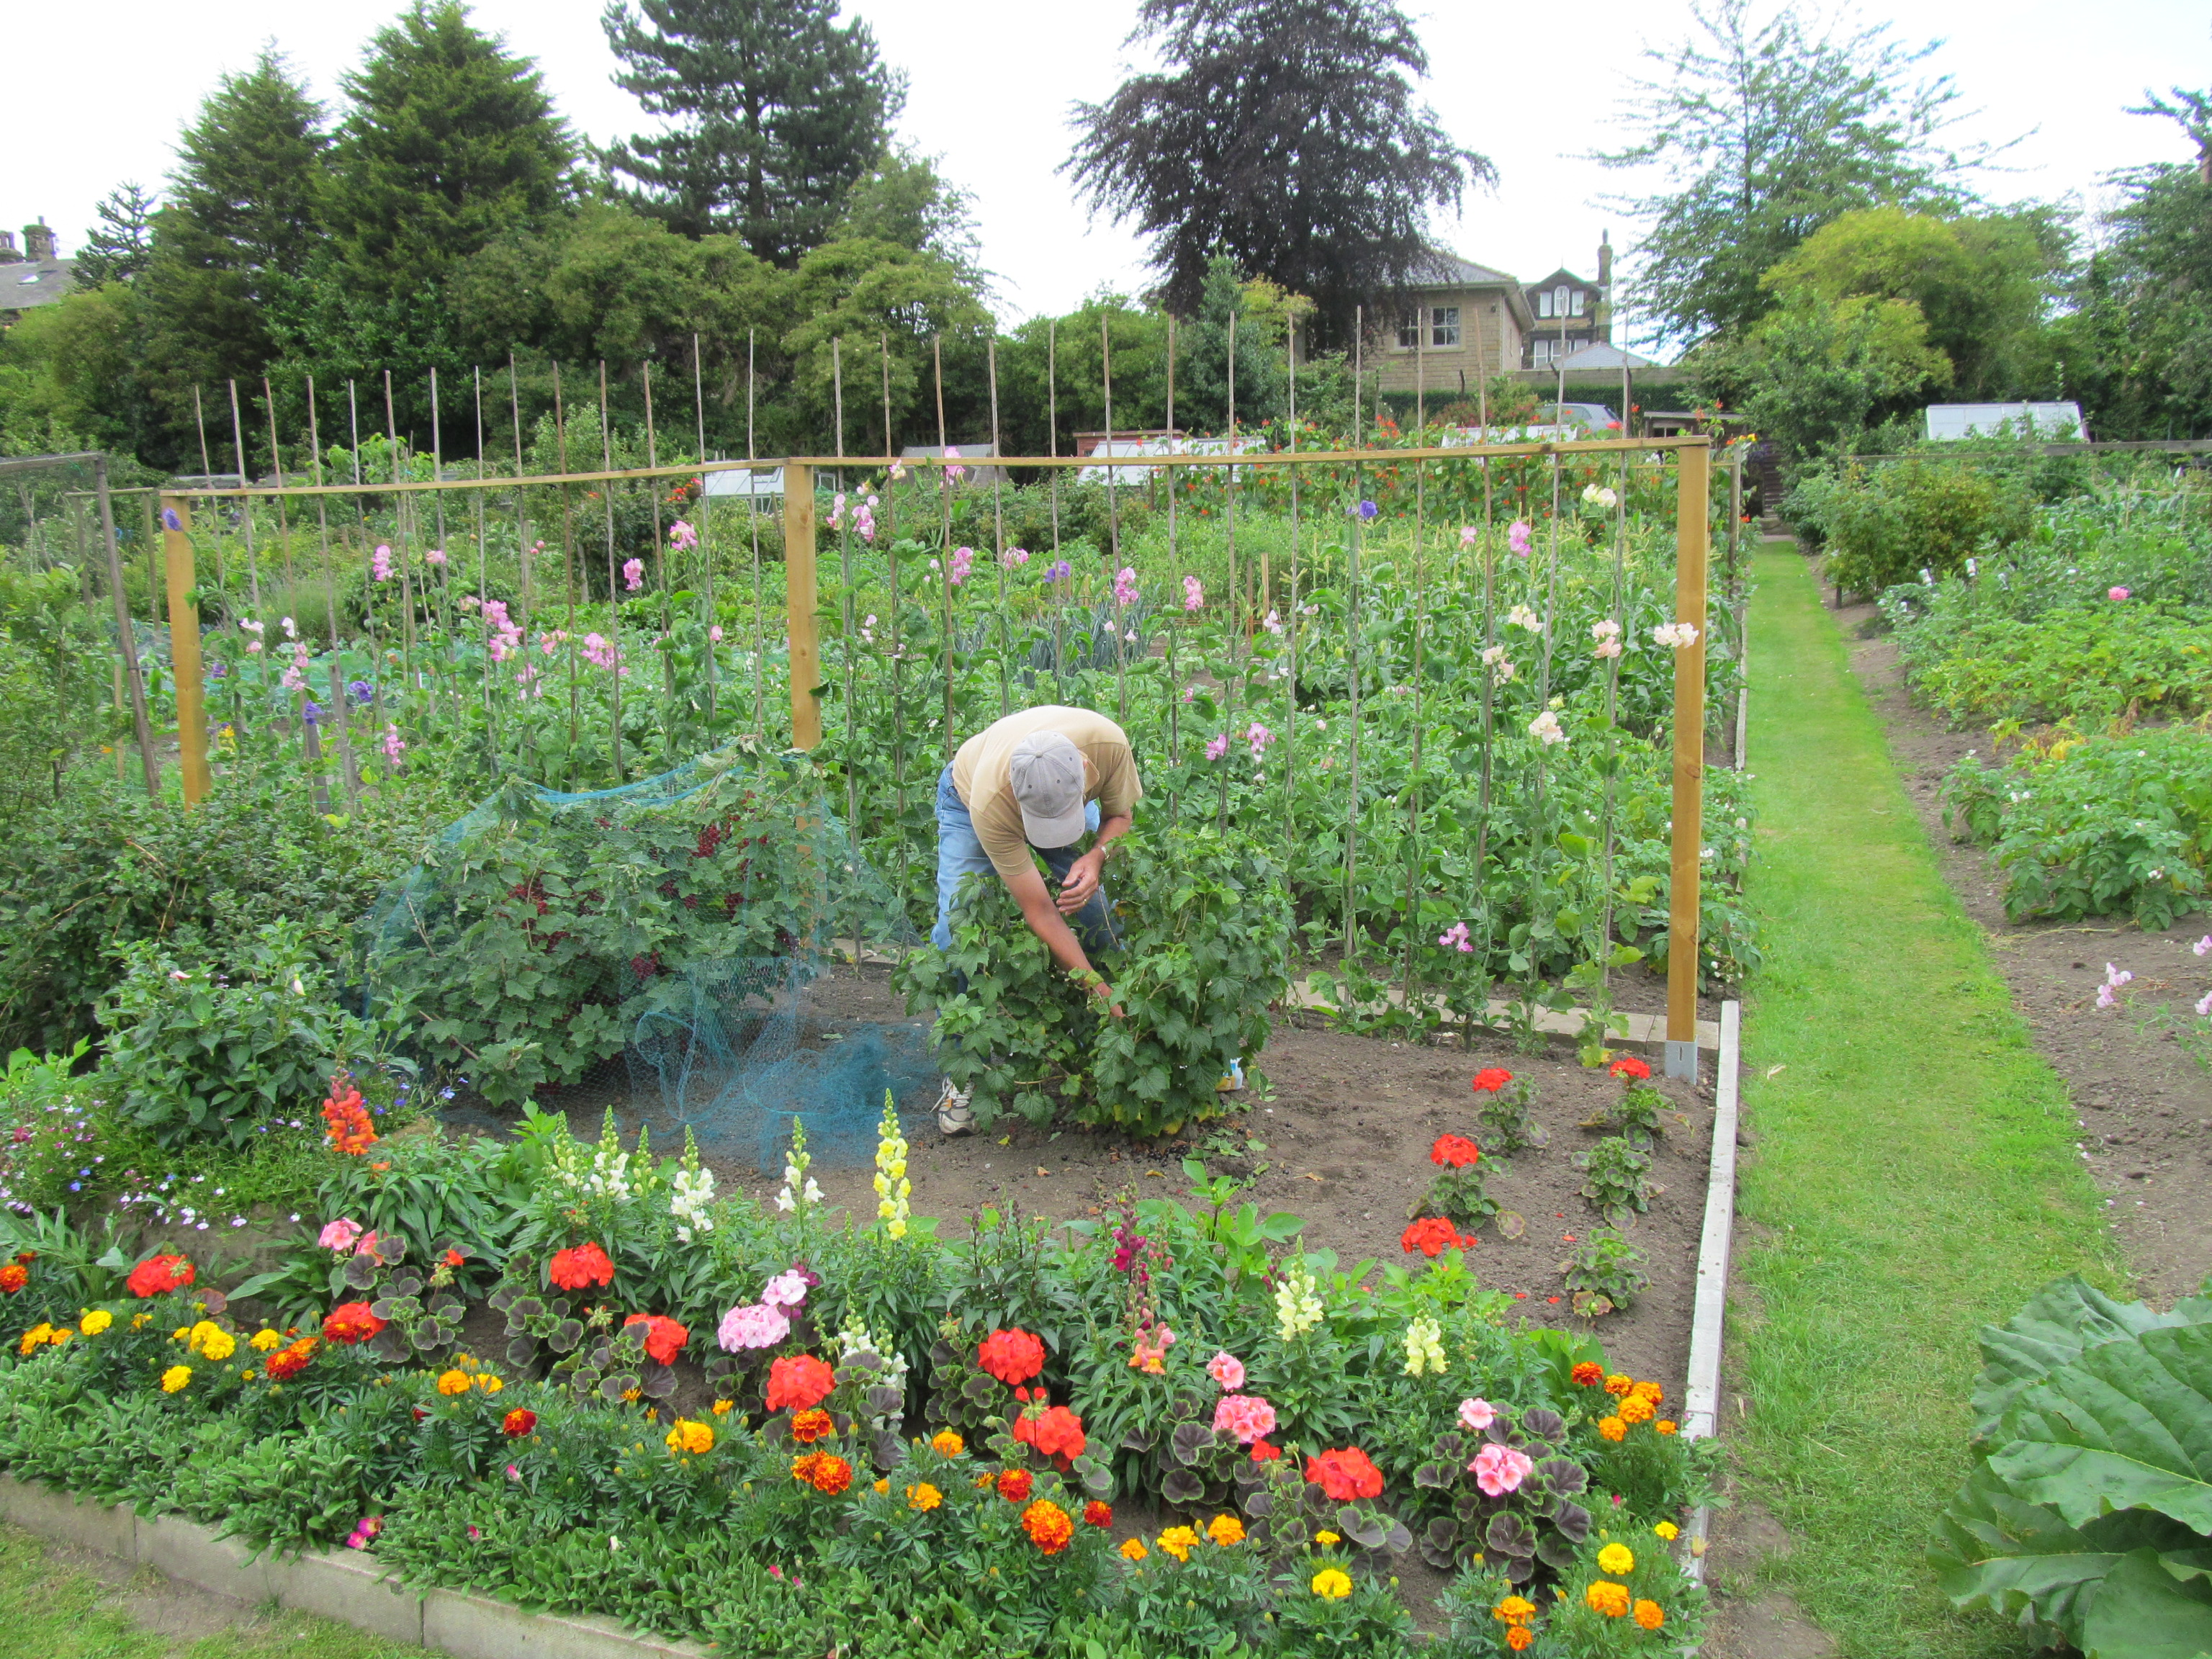 Leeds Allotment Gardeners In Battle With Council